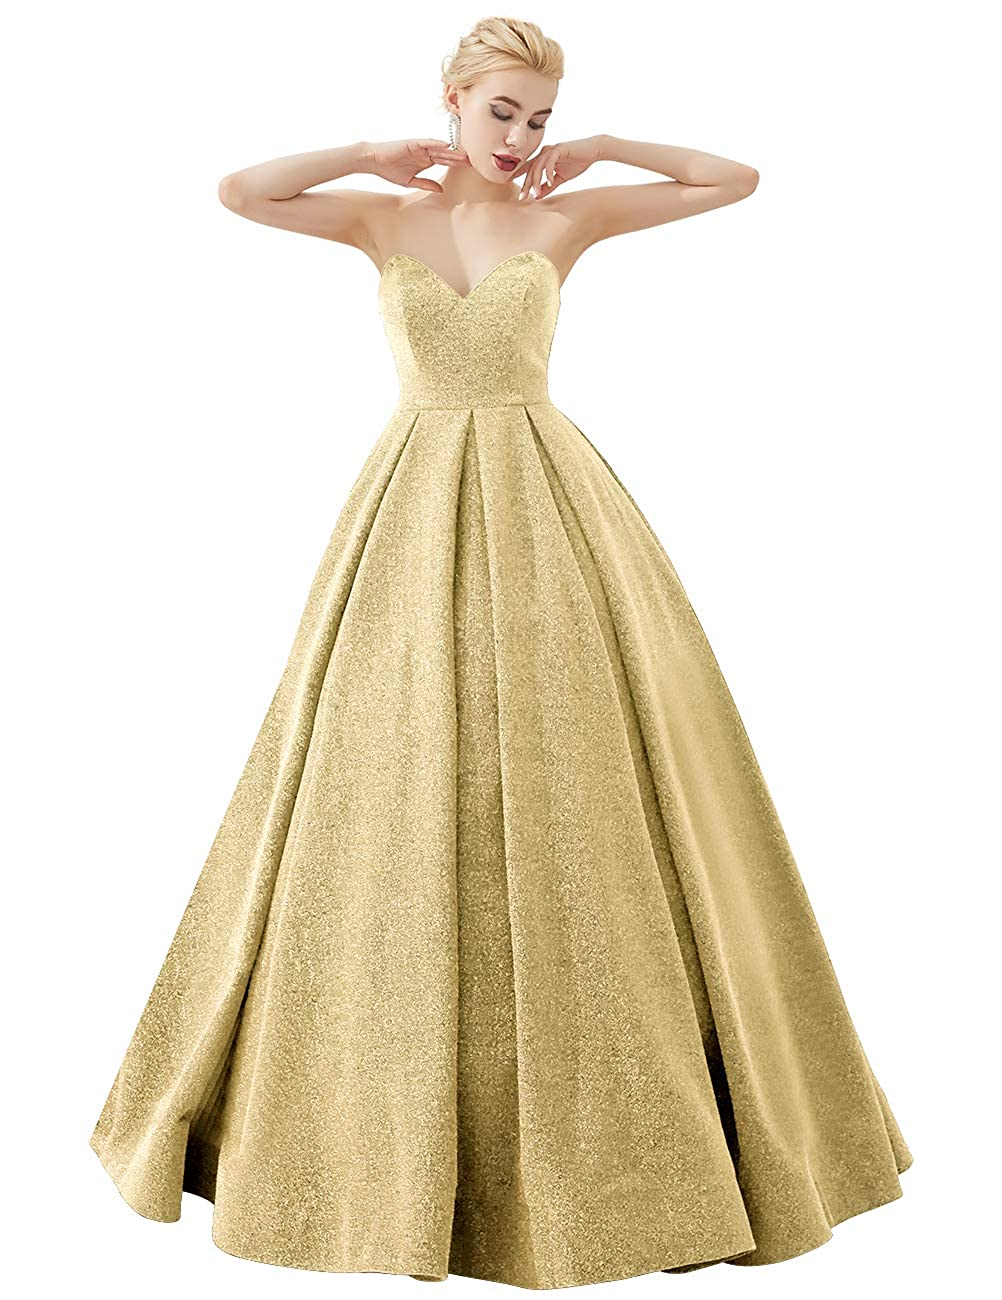 Champagne VKBRIDAL Women's Glittery Prom Dresses Long Formal Evening Party Ball Gowns